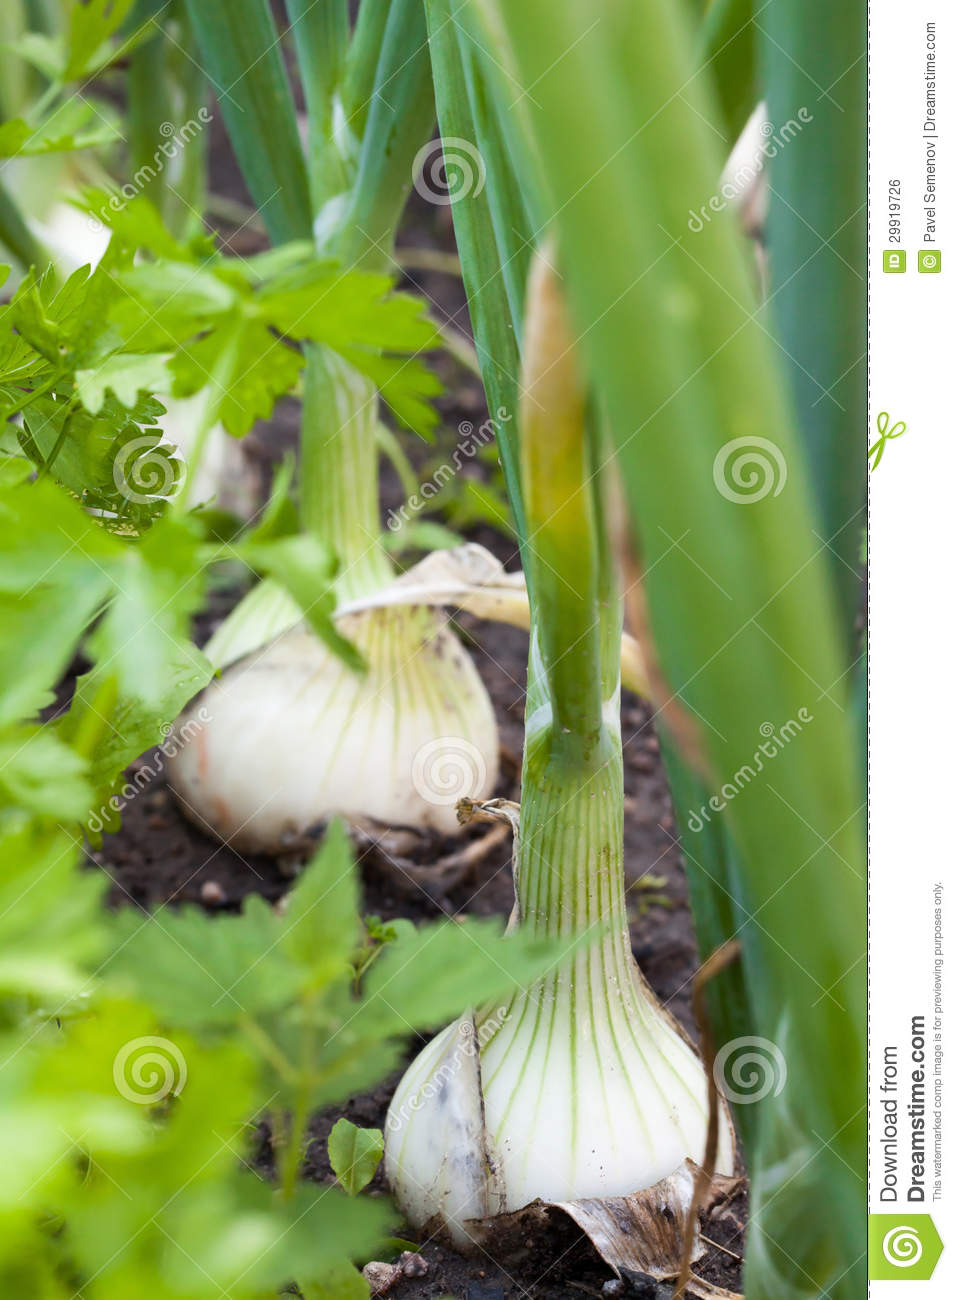 how to grow large onions from sets